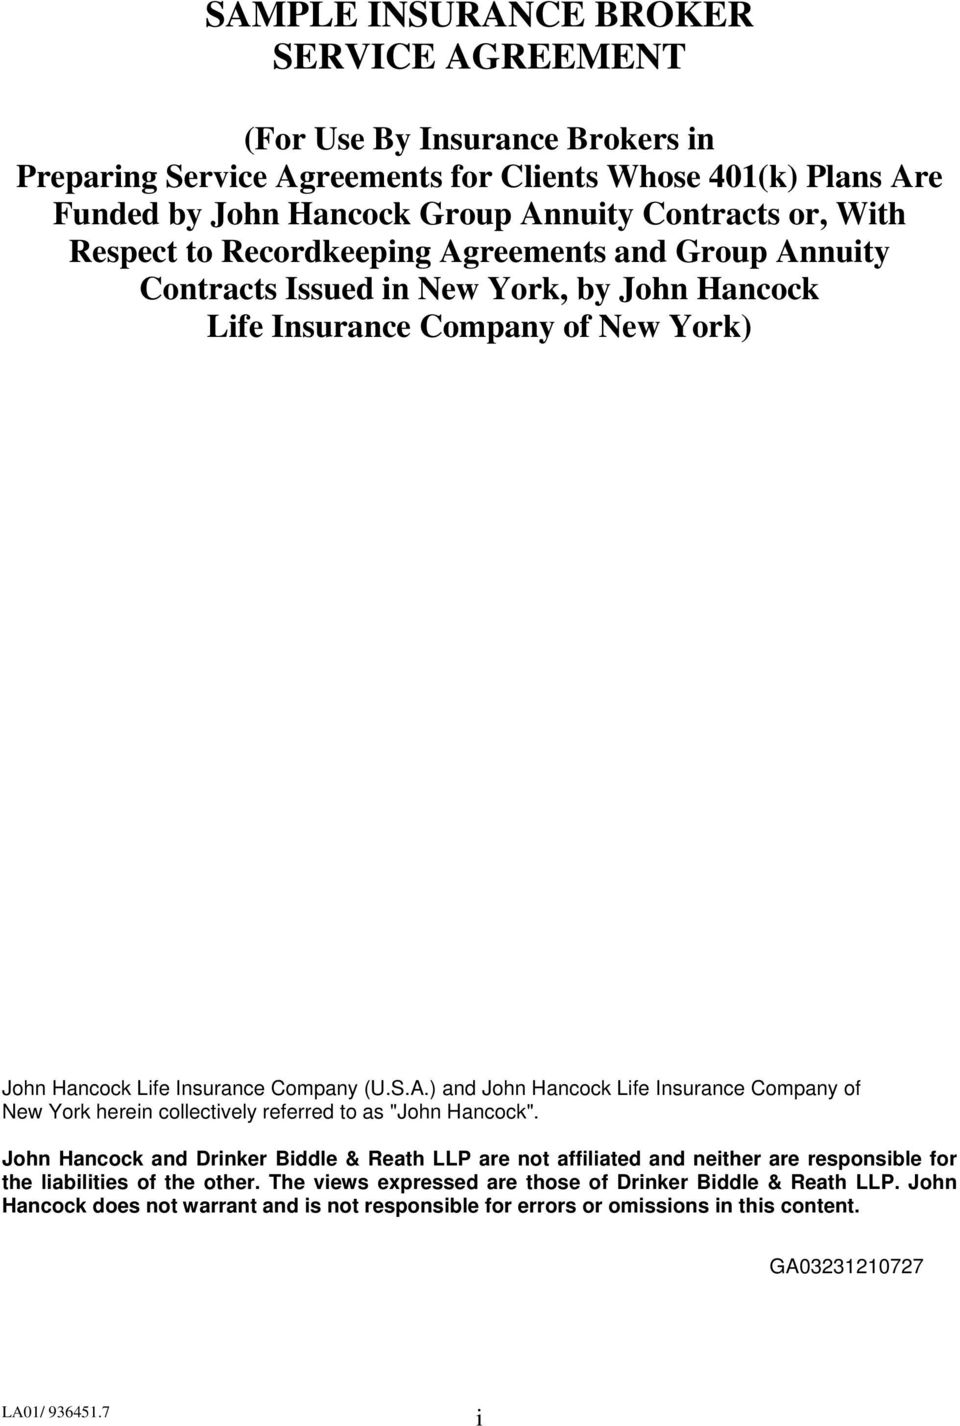 "Hancock Life Insurance Company of New York herein collectively referred to as ""John Hancock"" John Hancock and Drinker Biddle & Reath LLP are not affiliated and neither are responsible for the"